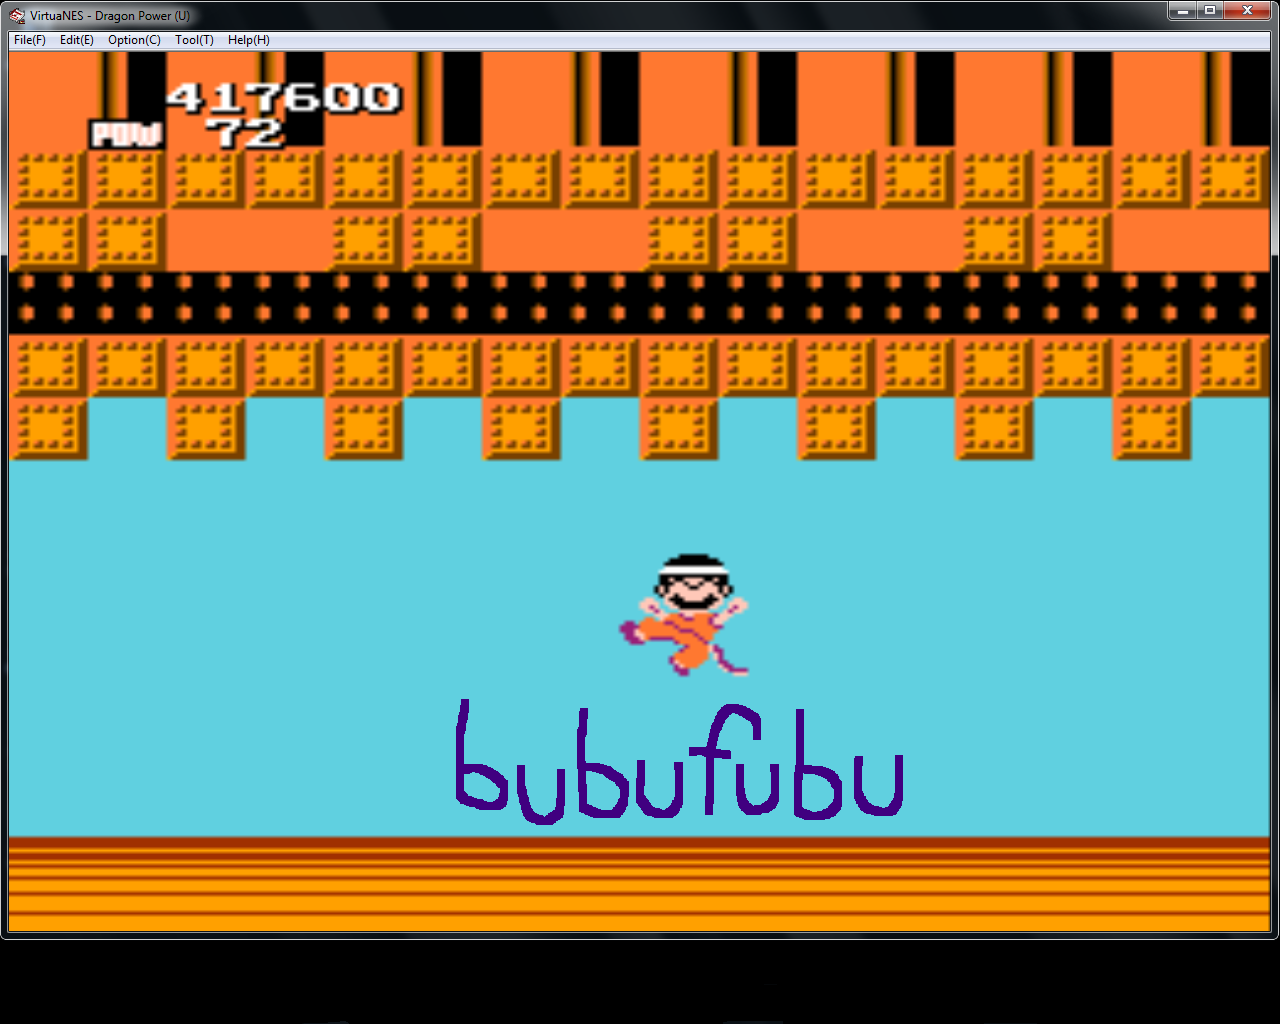 bubufubu: Dragon Power / Dragonball (NES/Famicom Emulated) 417,600 points on 2015-01-29 18:26:24